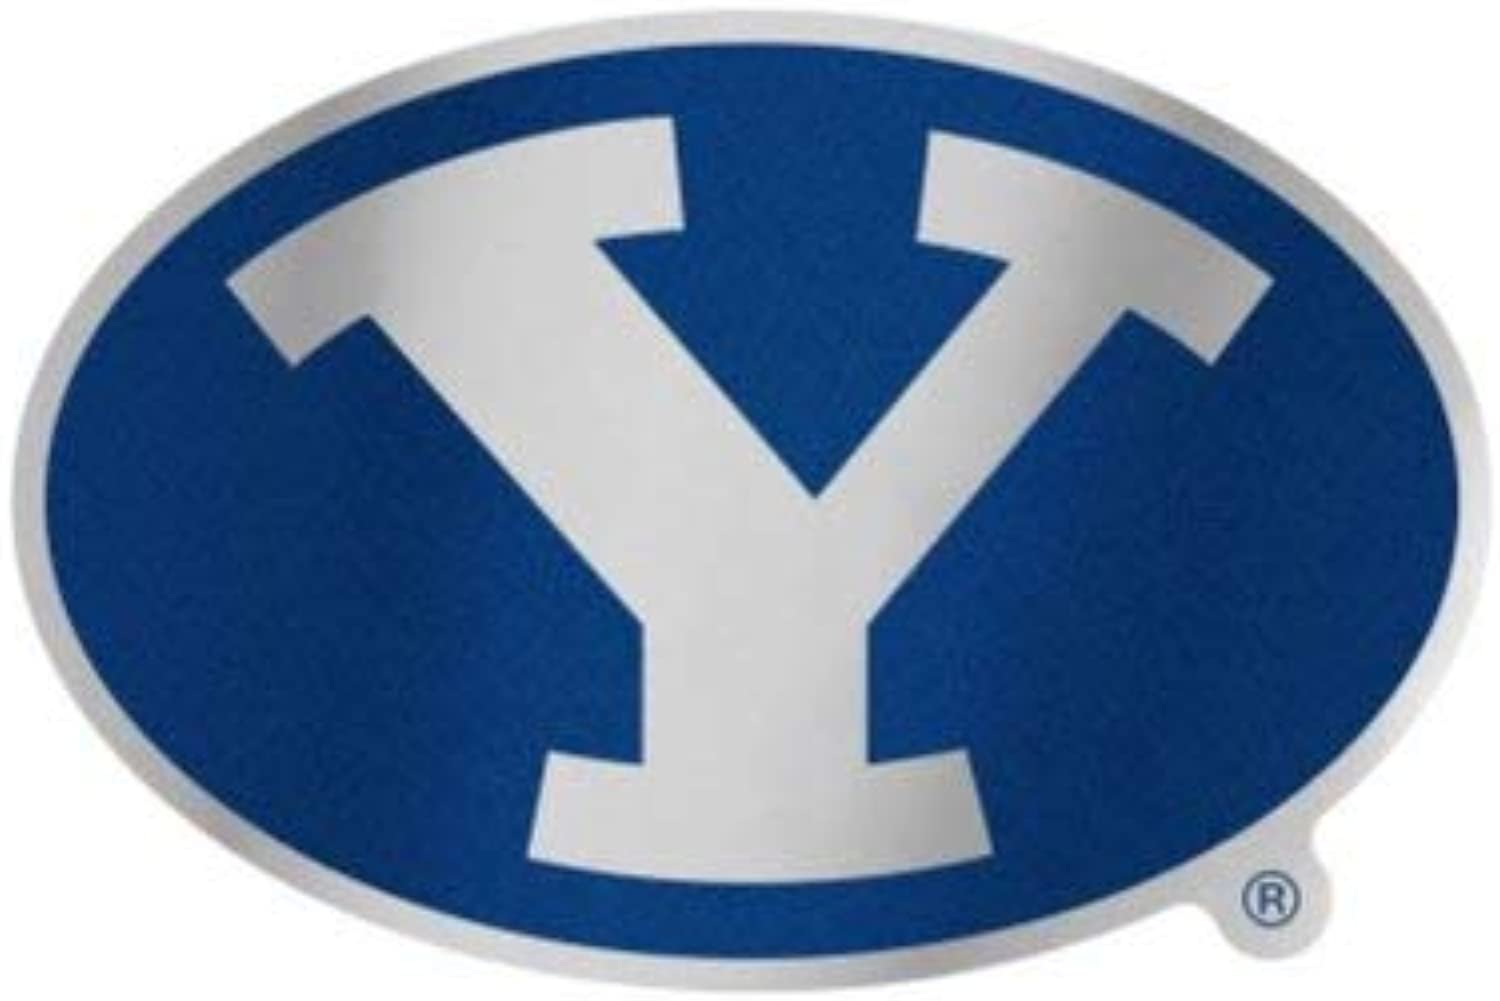 NCAA BYU Brigham Young Cougars 4.85  x 3.5  Inch Plastic Auto Badge Sticker Decal